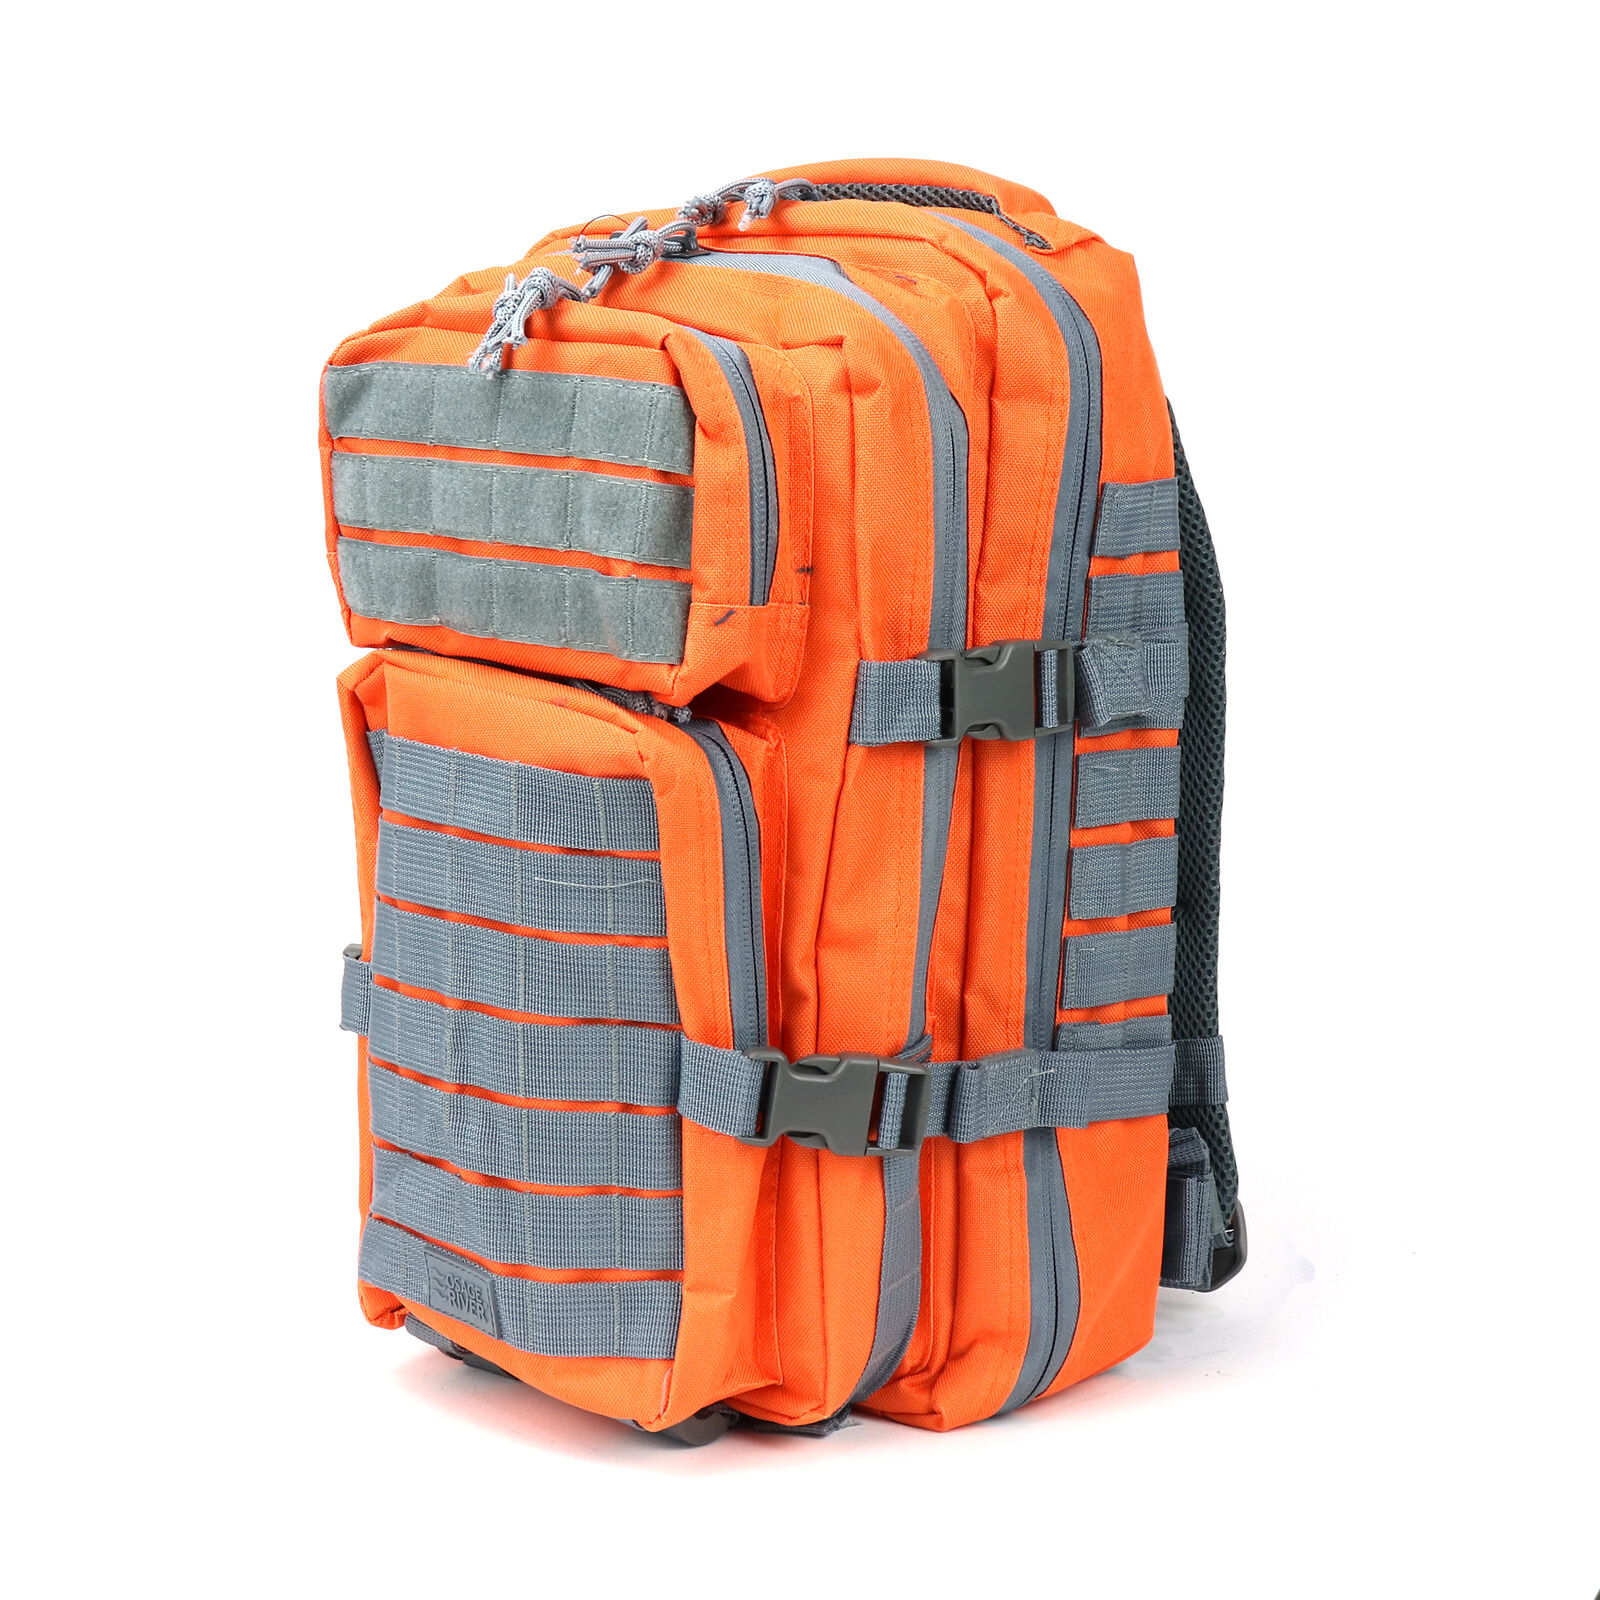 Osage River Fishing Backpack, Tackle and Rod space - s l1600